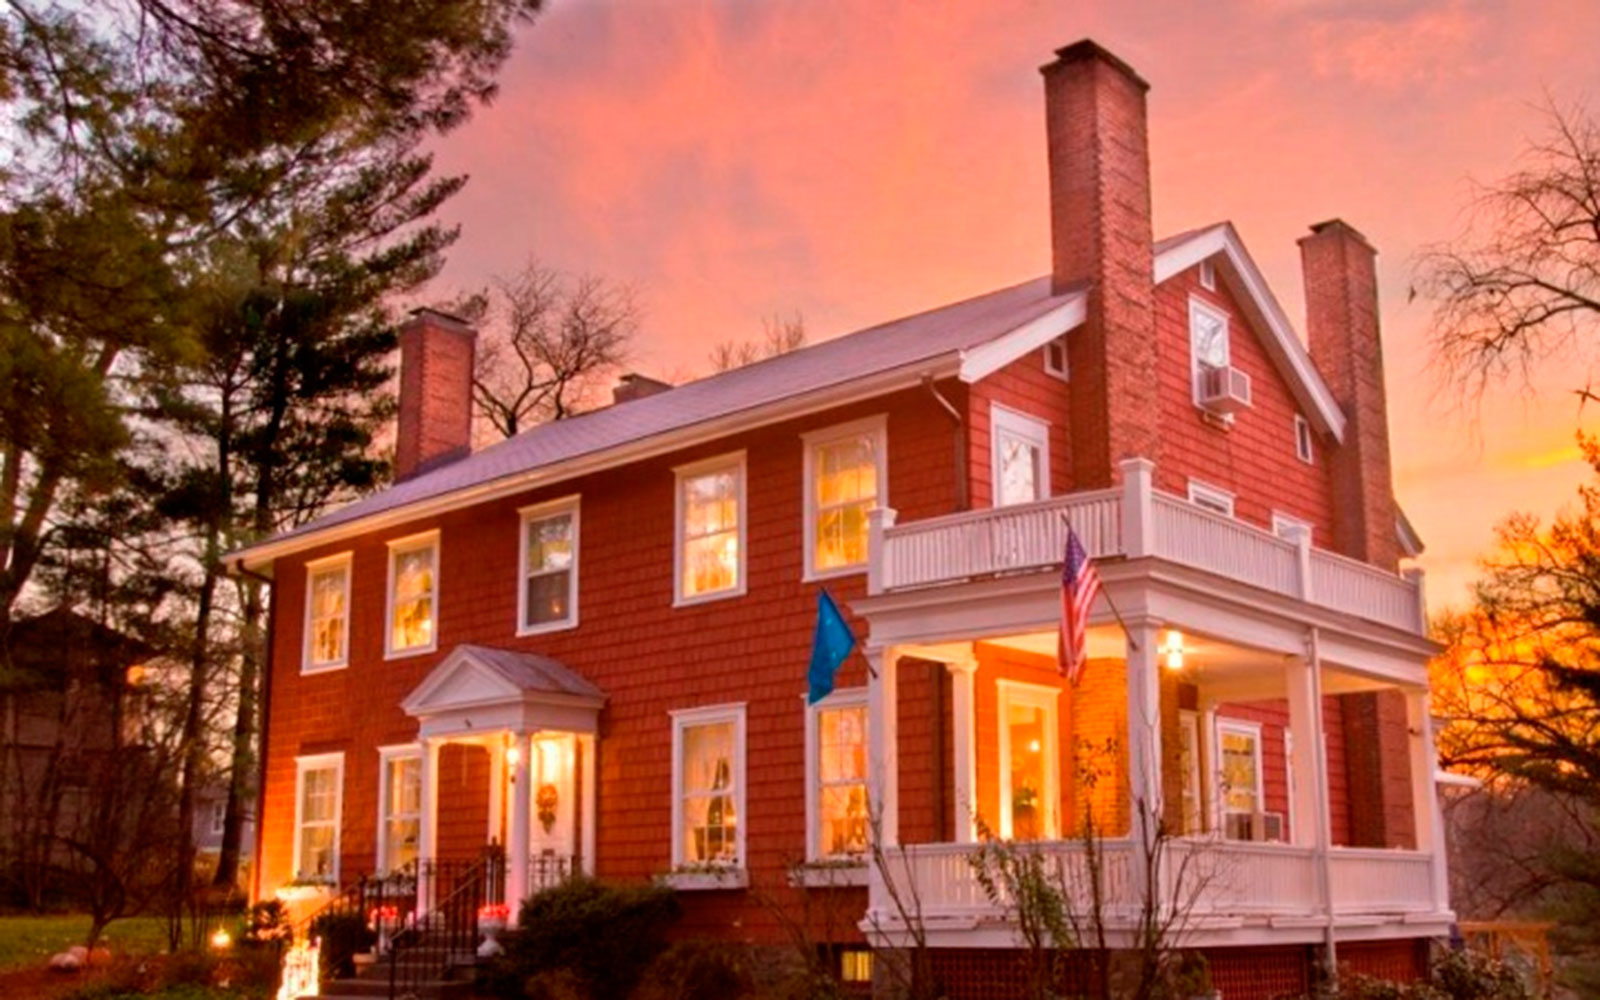 America's Best Hotels for Fall Colors: Applewood Manor, Asheville, NC